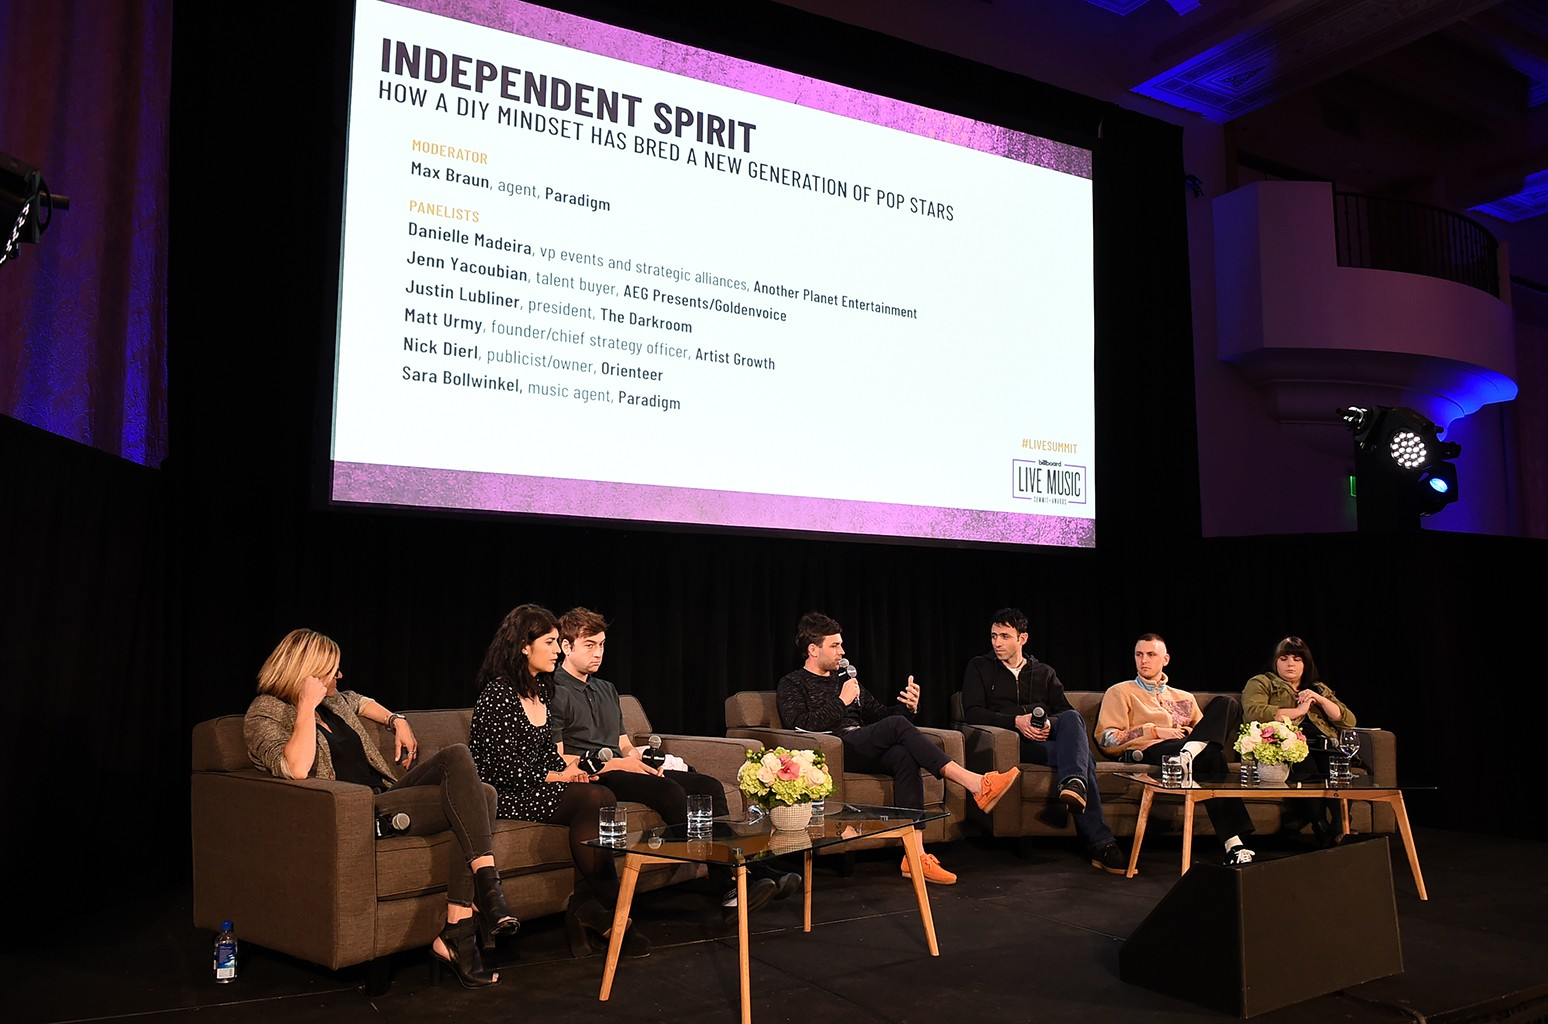 Independent Spirit: How a DIY Mindset Has Bred a New Generation of Pop Stars Panel at the 2018 Billboard Live Music Summit + Awards at the Montage Beverly Hills on Nov. 14, 2018 in Beverly Hills, Calif.